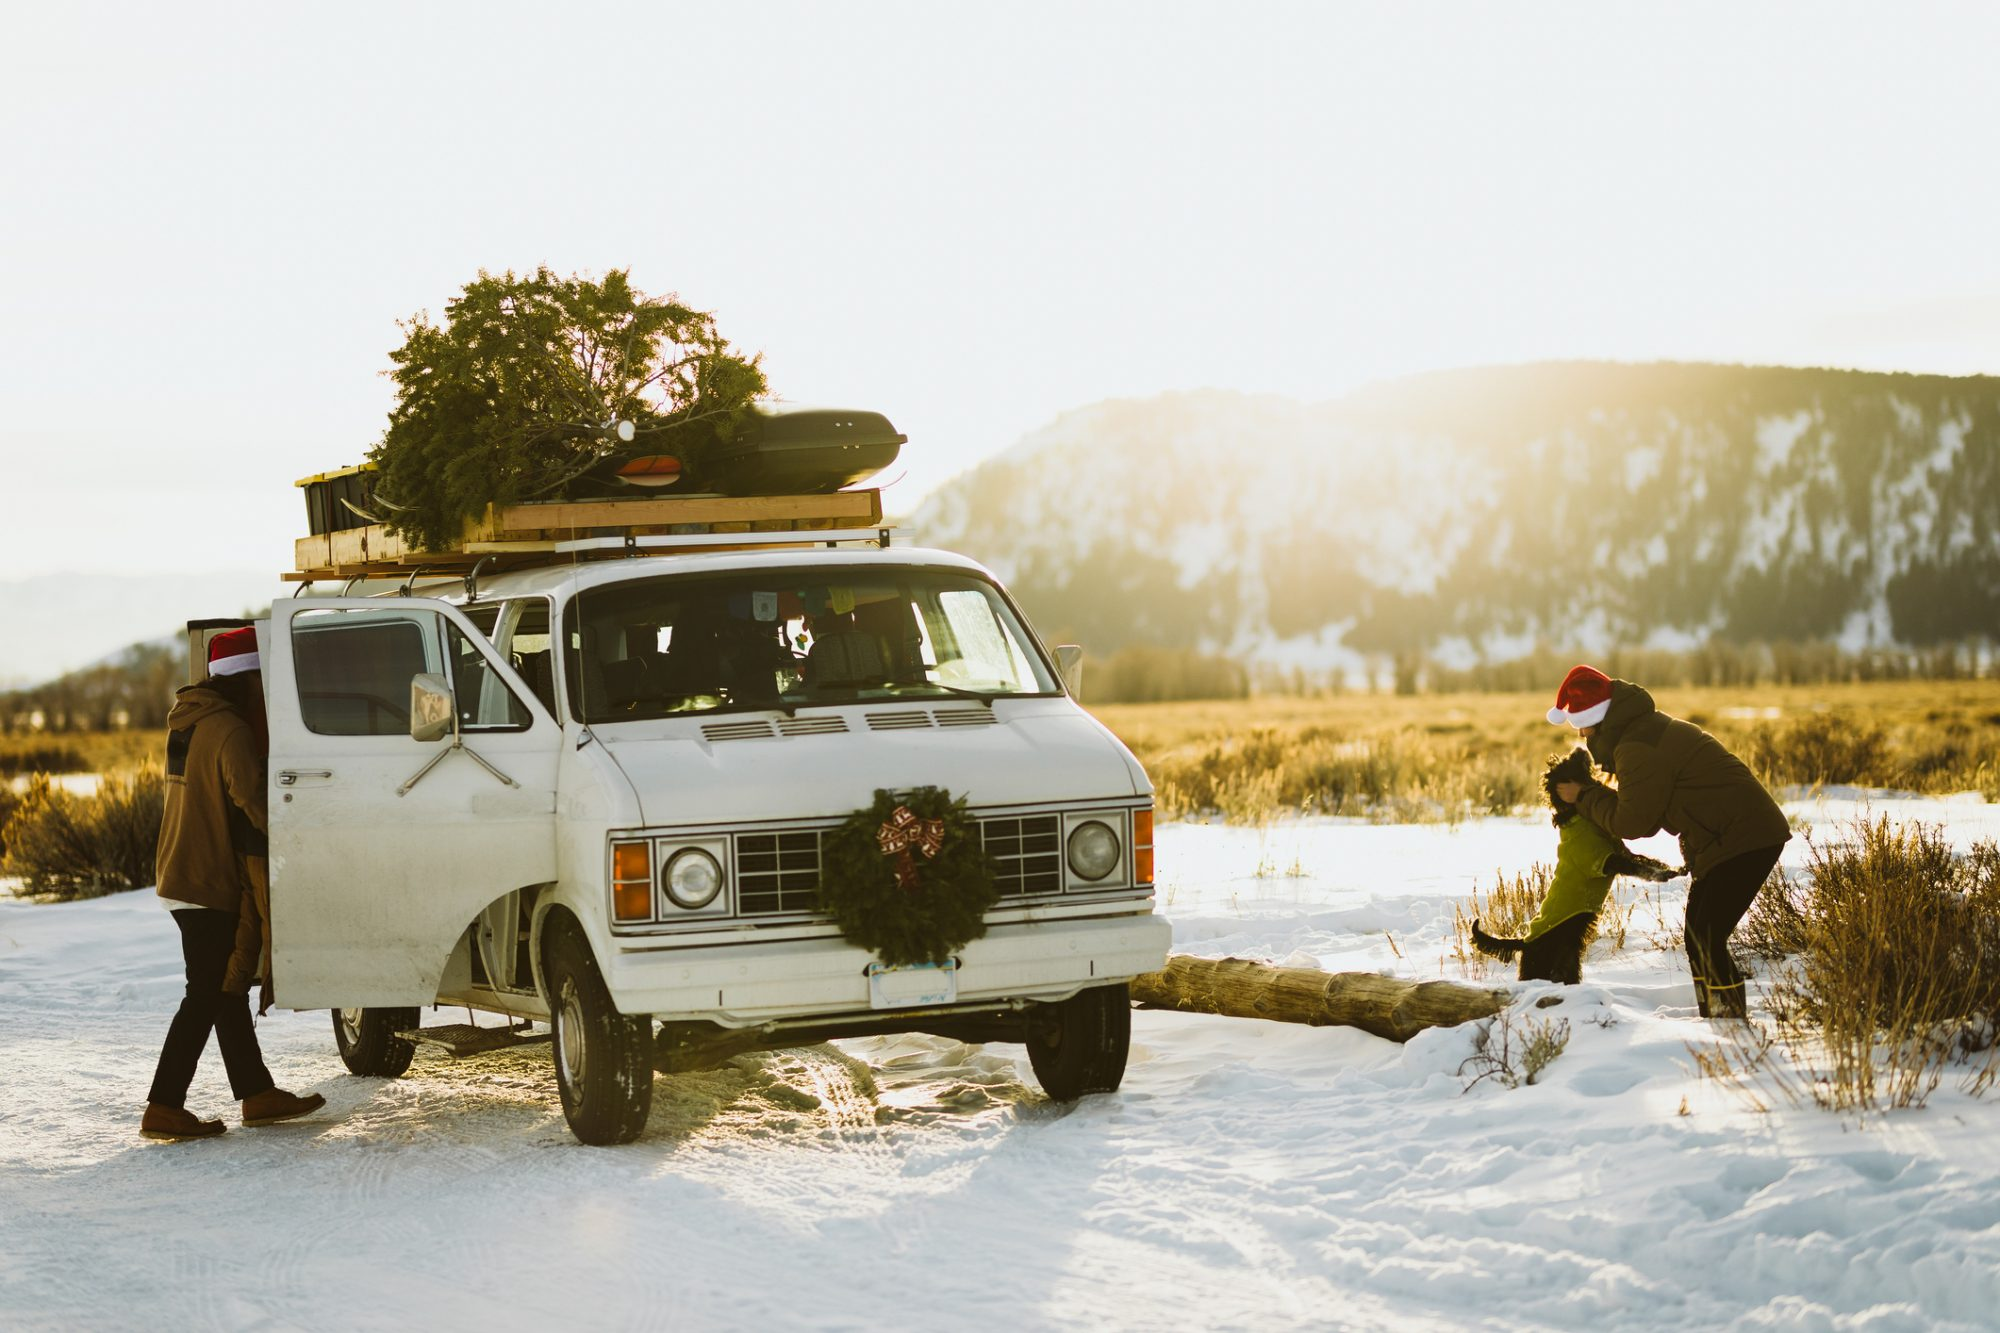 Take a Christmas Road Trip